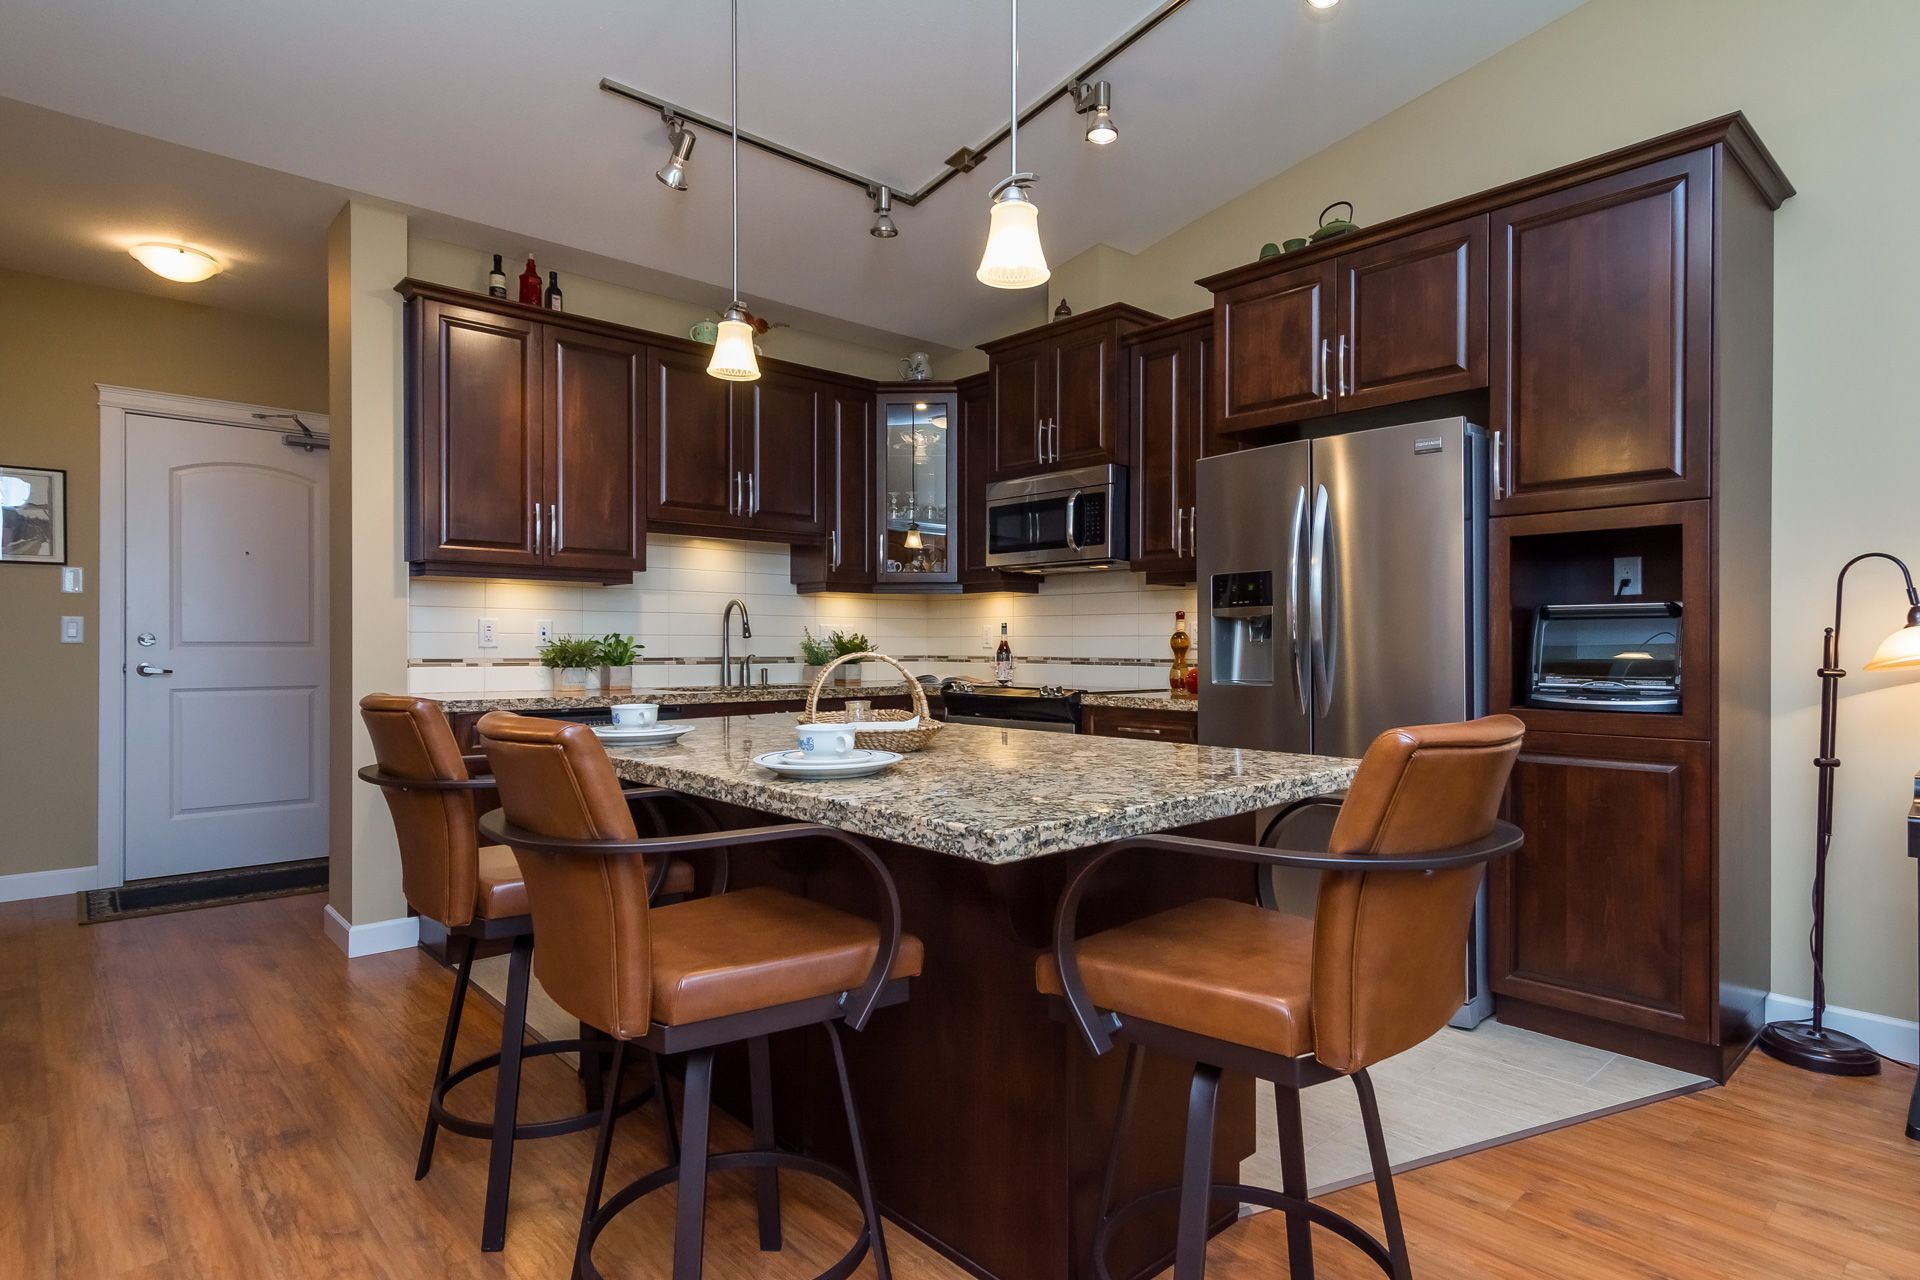 """Photo 15: Photos: 509 8258 207A Street in Langley: Willoughby Heights Condo for sale in """"YORKSON CREEK (BLG A)"""" : MLS®# R2221052"""